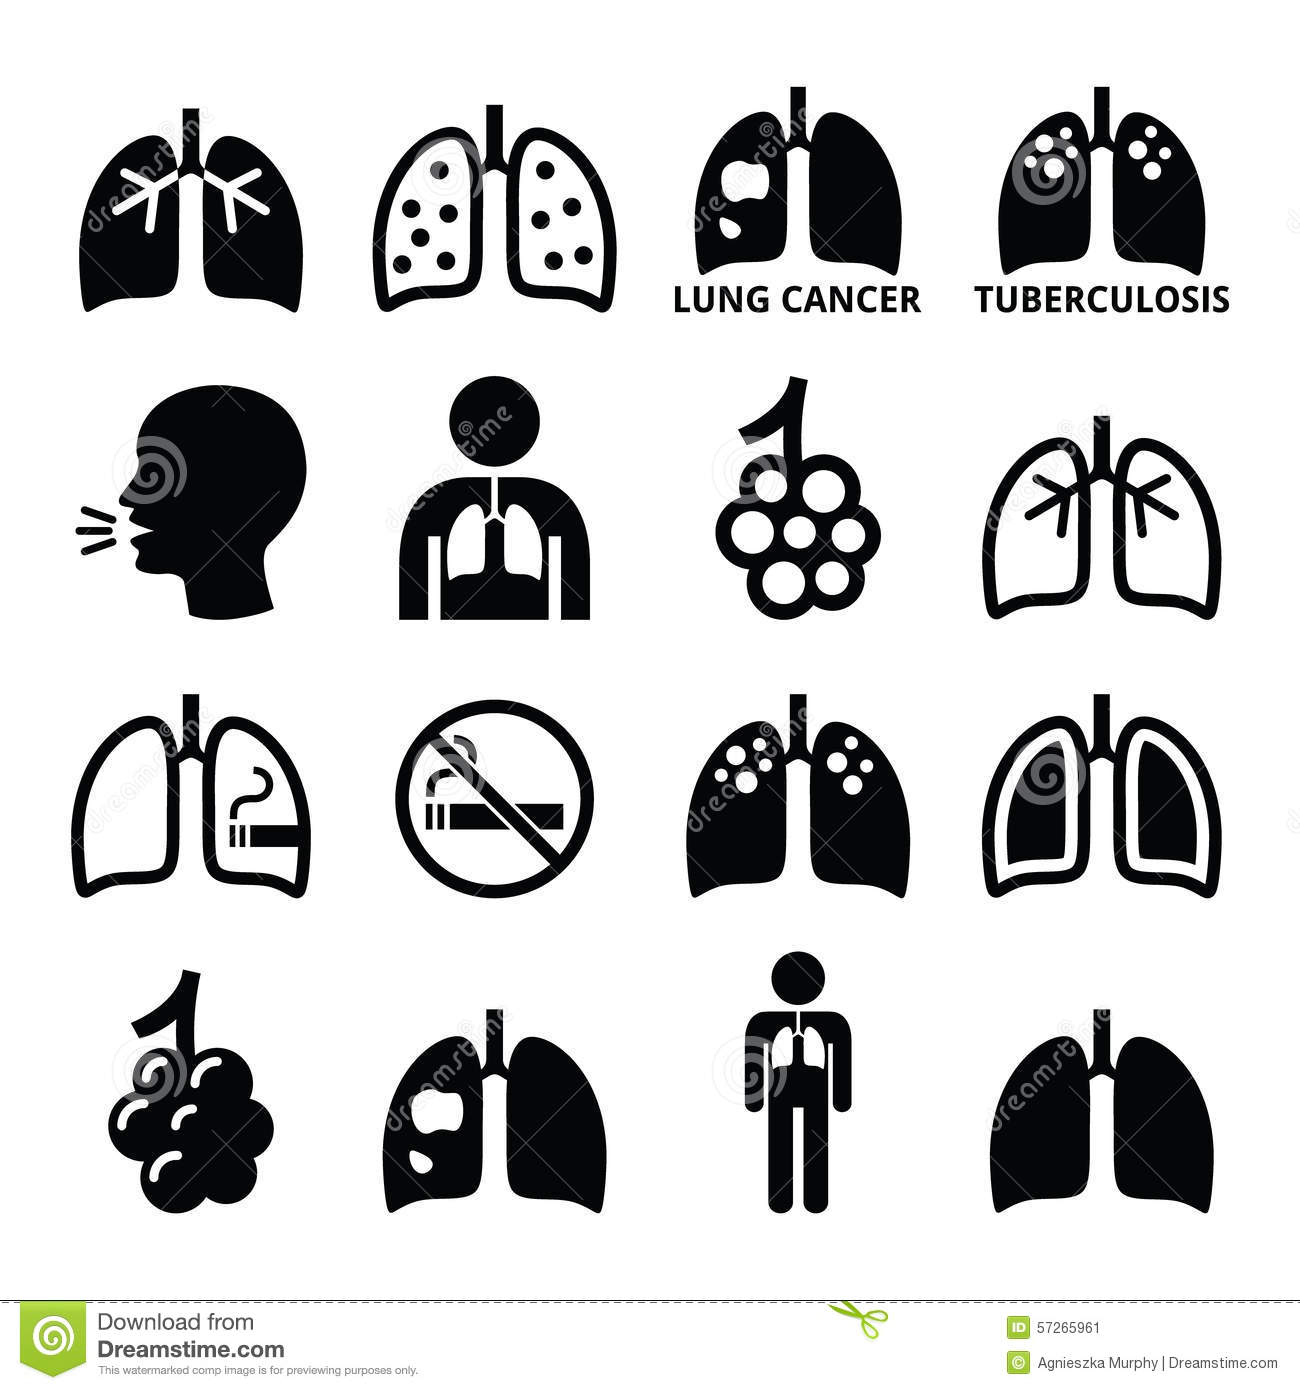 http://thumbs.dreamstime.com/z/lungs-lung-disease-icons-set-tuberculosis-cancer-human-body-parts-isolated-white-57265961.jpg